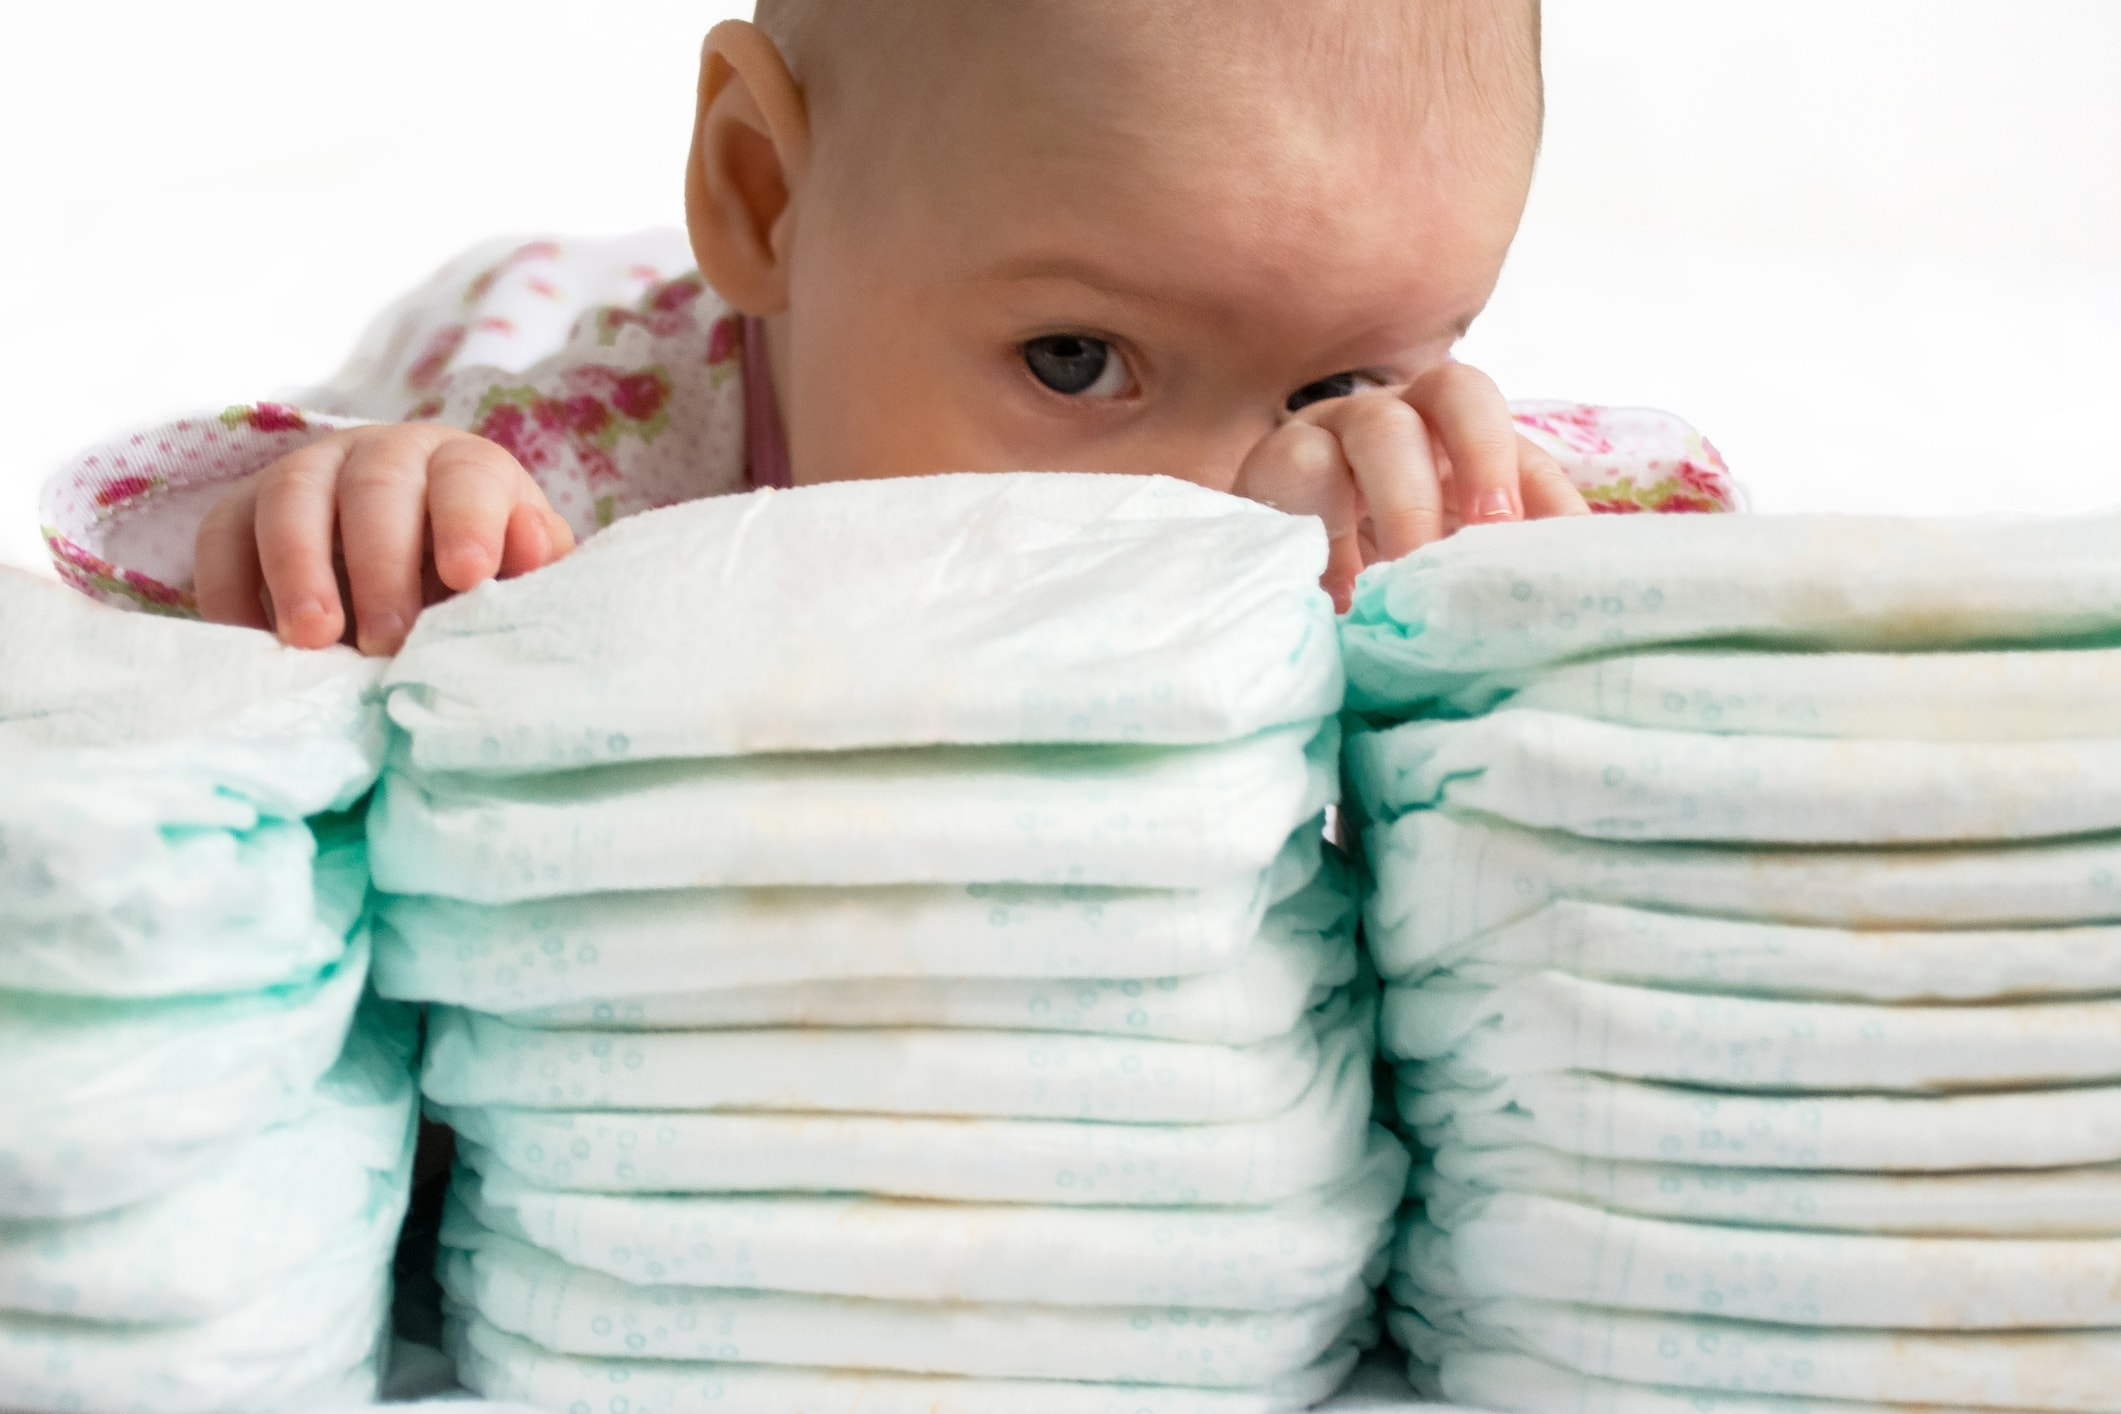 Diapers in the Landfill